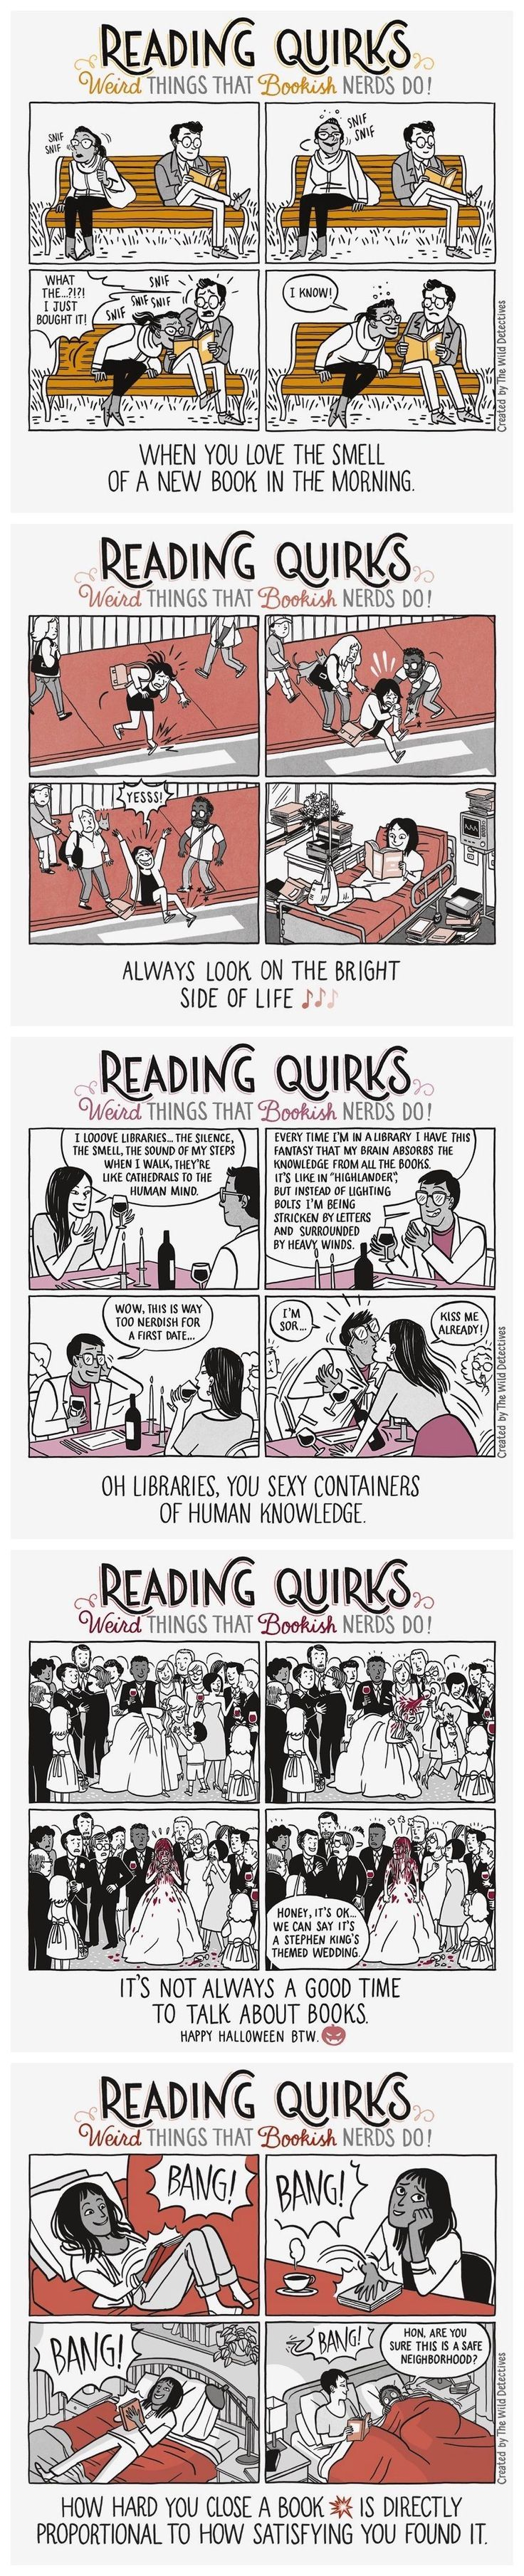 Reading Quirks is an awesome webcomic about